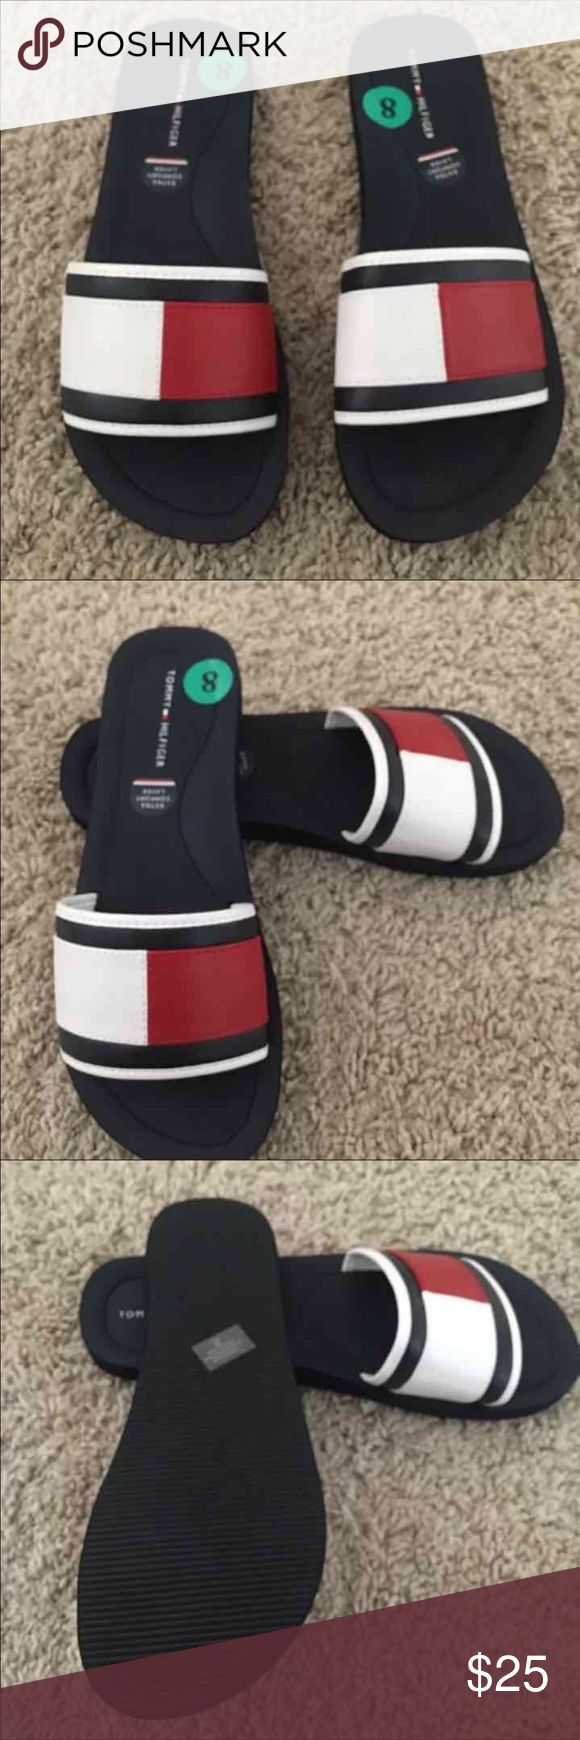 Tommy Hilfiger logo women's Flip Flop size 8 Brand New Women's Tommy Hilfiger Logo flip flops size 8. new without box Tommy Hilfiger Shoes Sandals